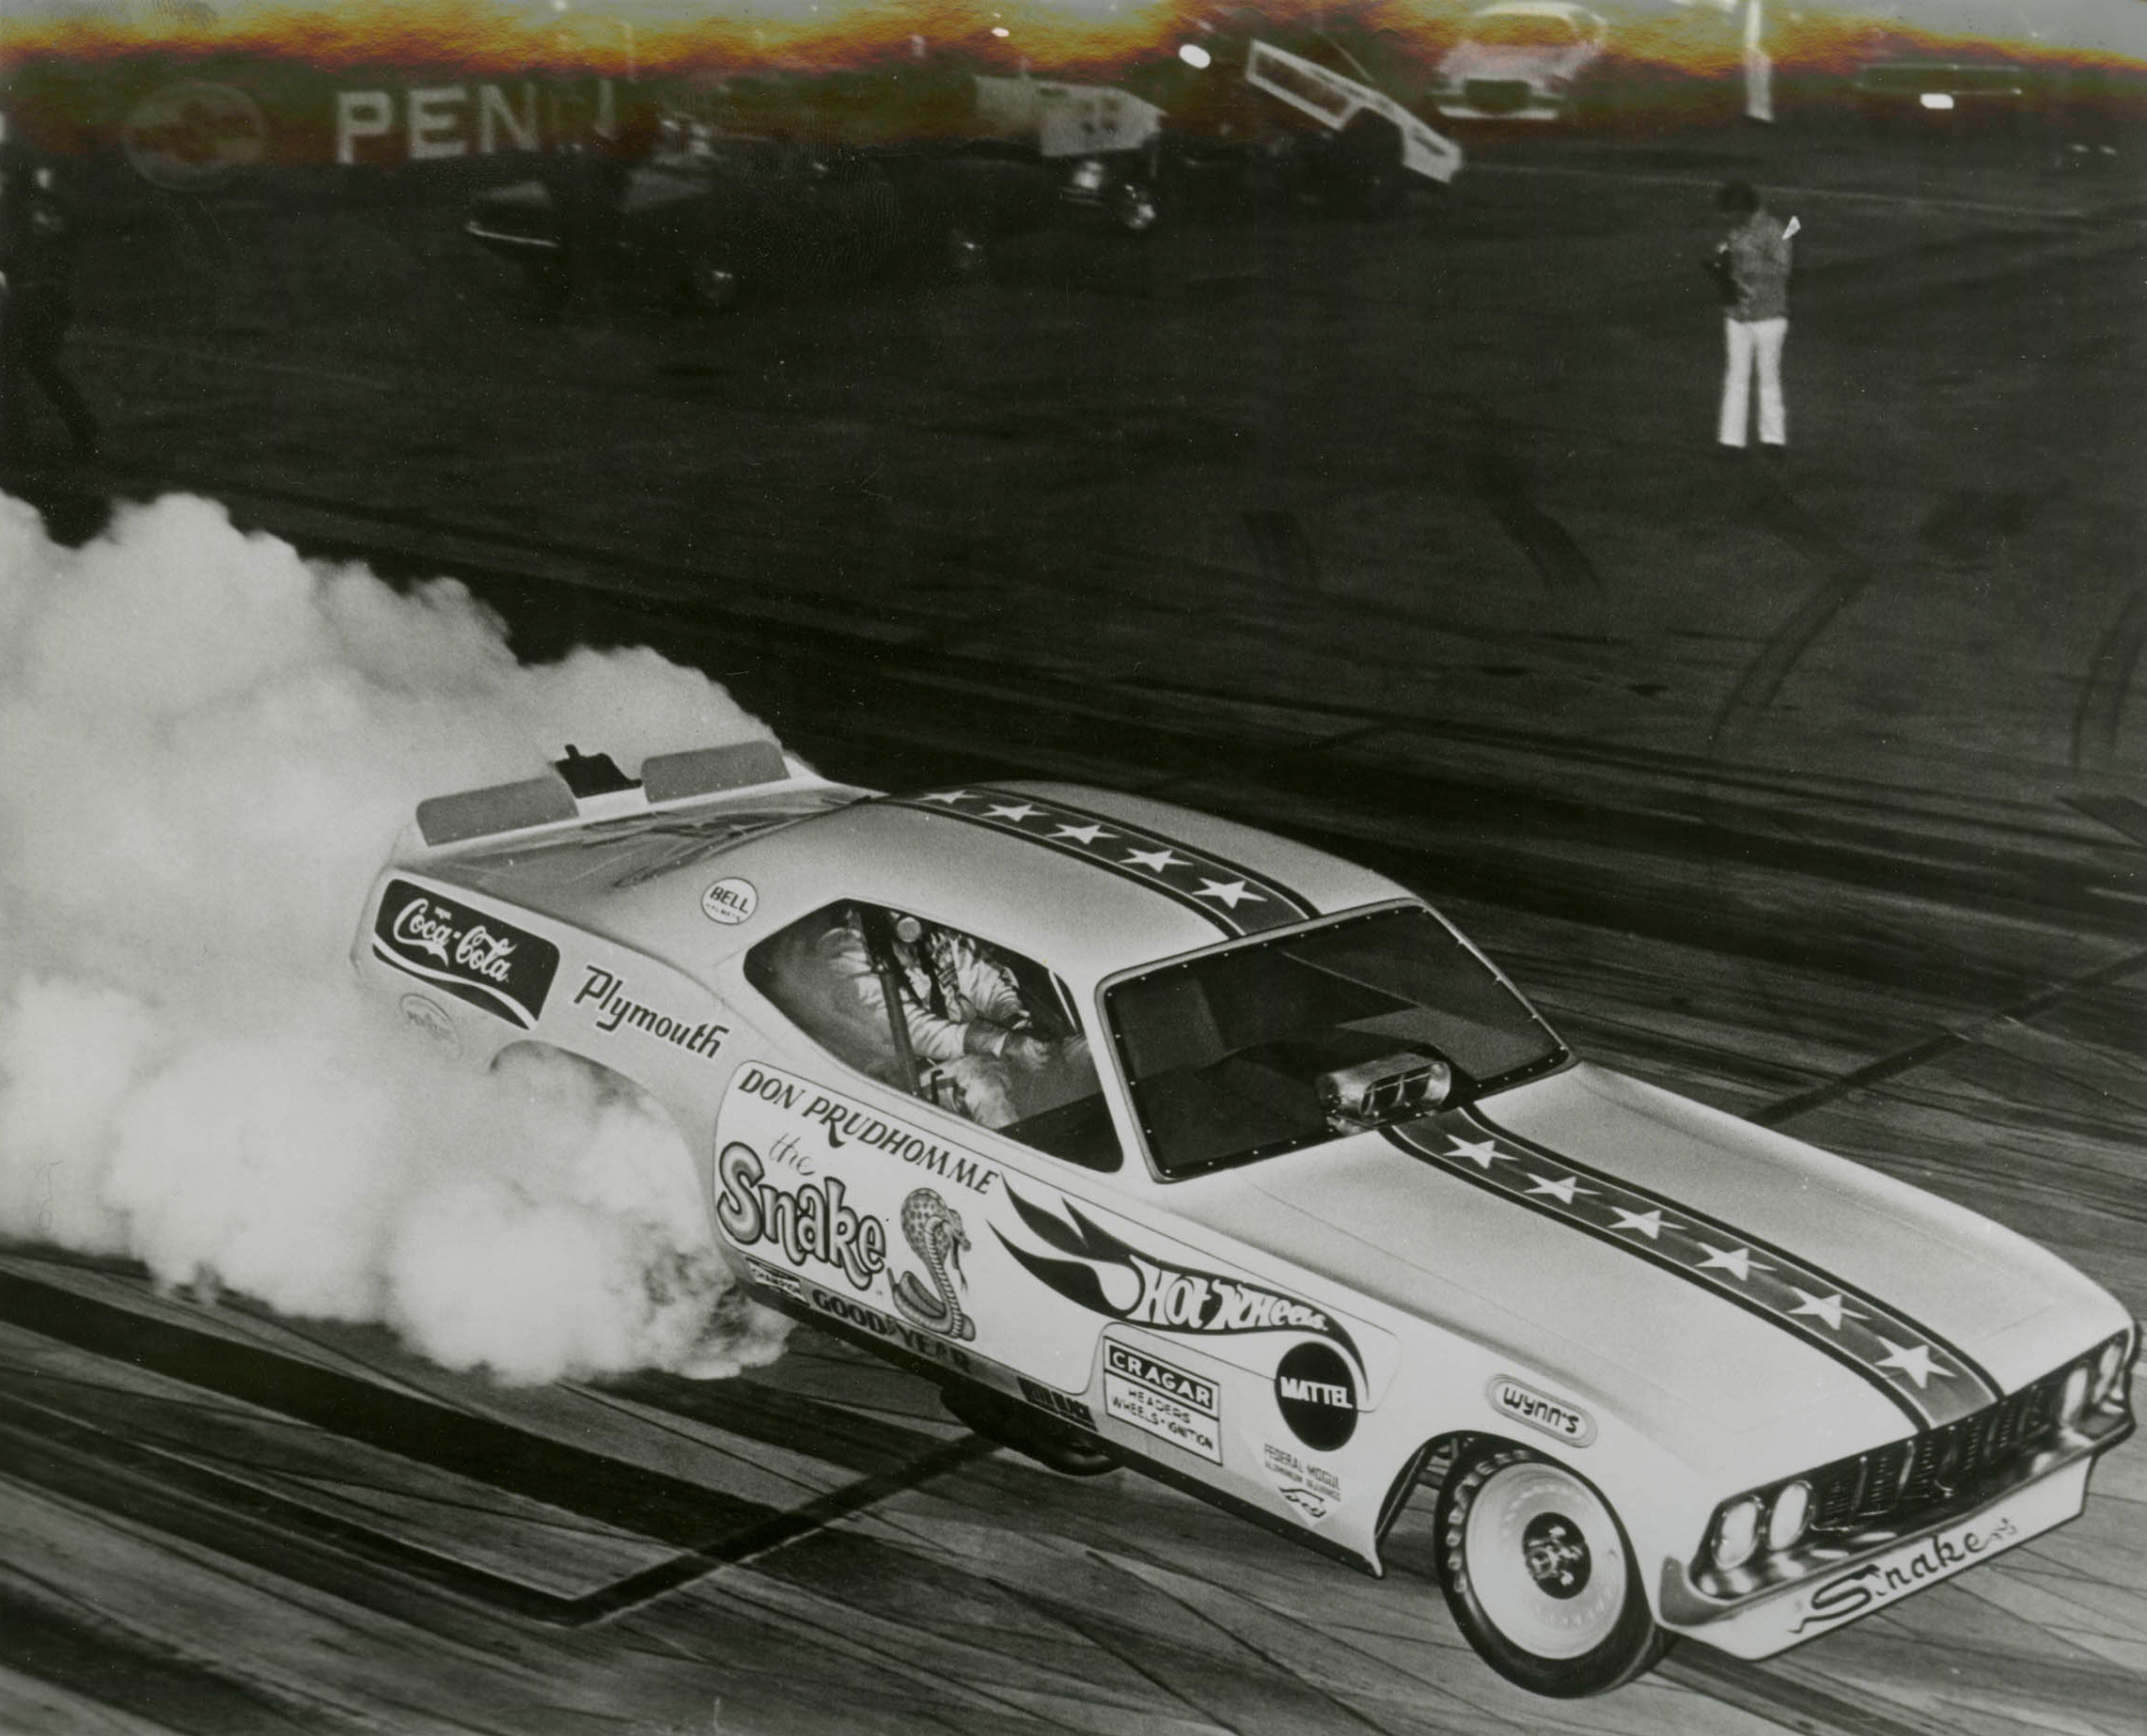 When Prudhomme raced the Hot Wheels–sponsored Plymouth in 1970 (left), he wasn't into street-legal muscle cars. He said he'd had enough loud engines in his day job.